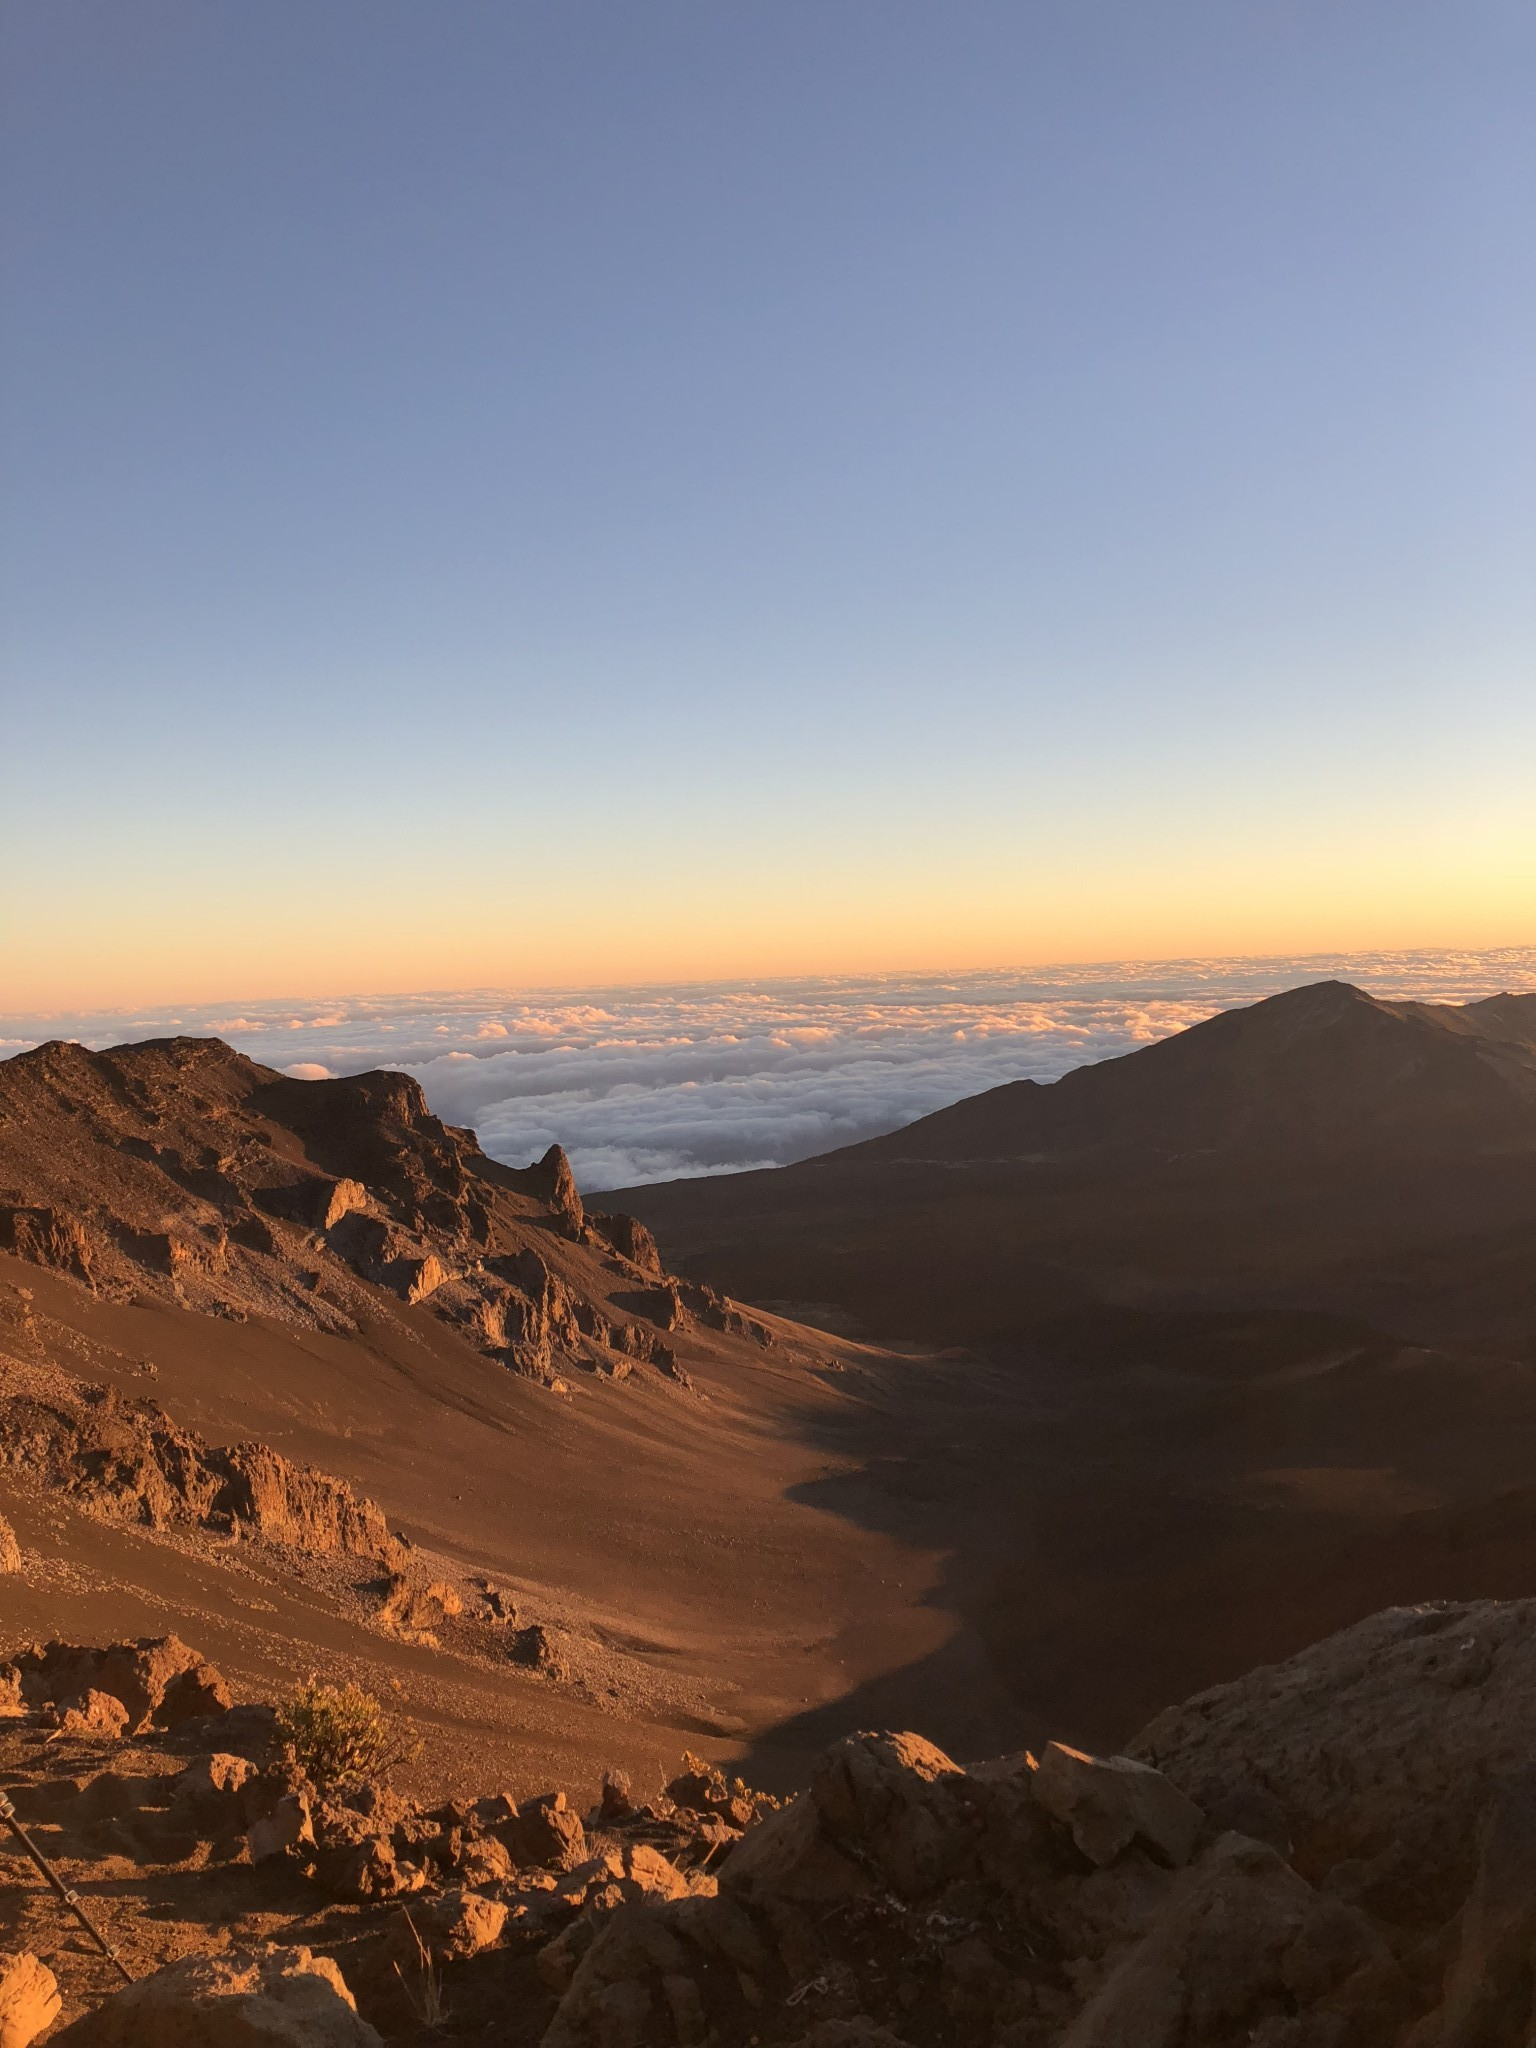 sunrise at haleakala national park, maui, the-alyst.com